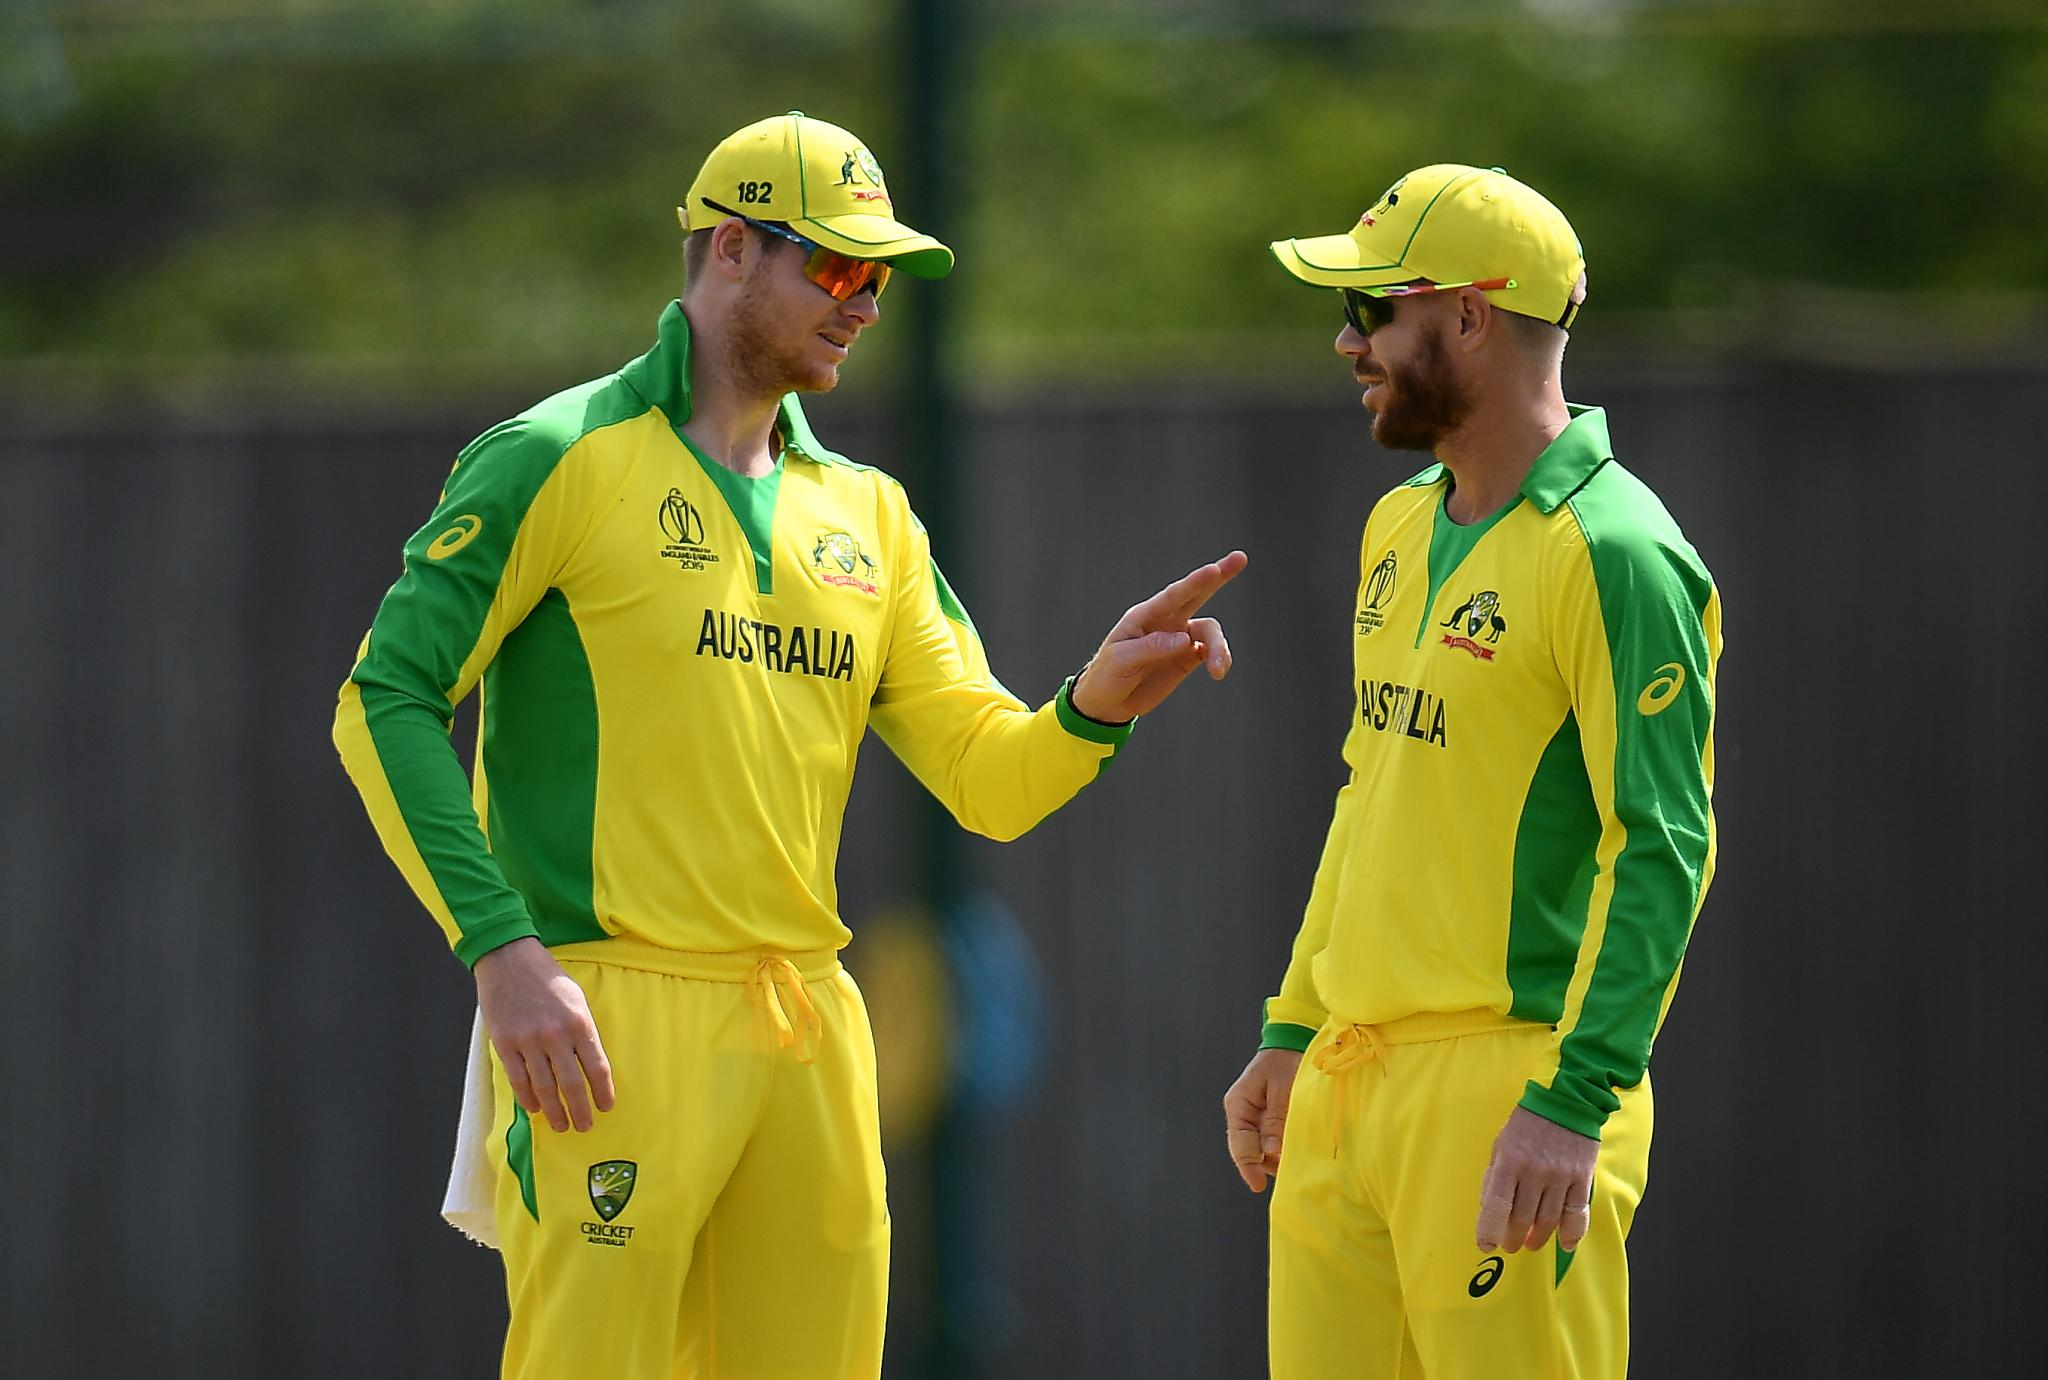 Live Cricket Streaming of Australia Vs Pakistan, 1st T20I 2019 on Sony Six & PTV Sports: Check Live Cricket Score, Watch Free Telecast of AUS vs PAK on TV and Online